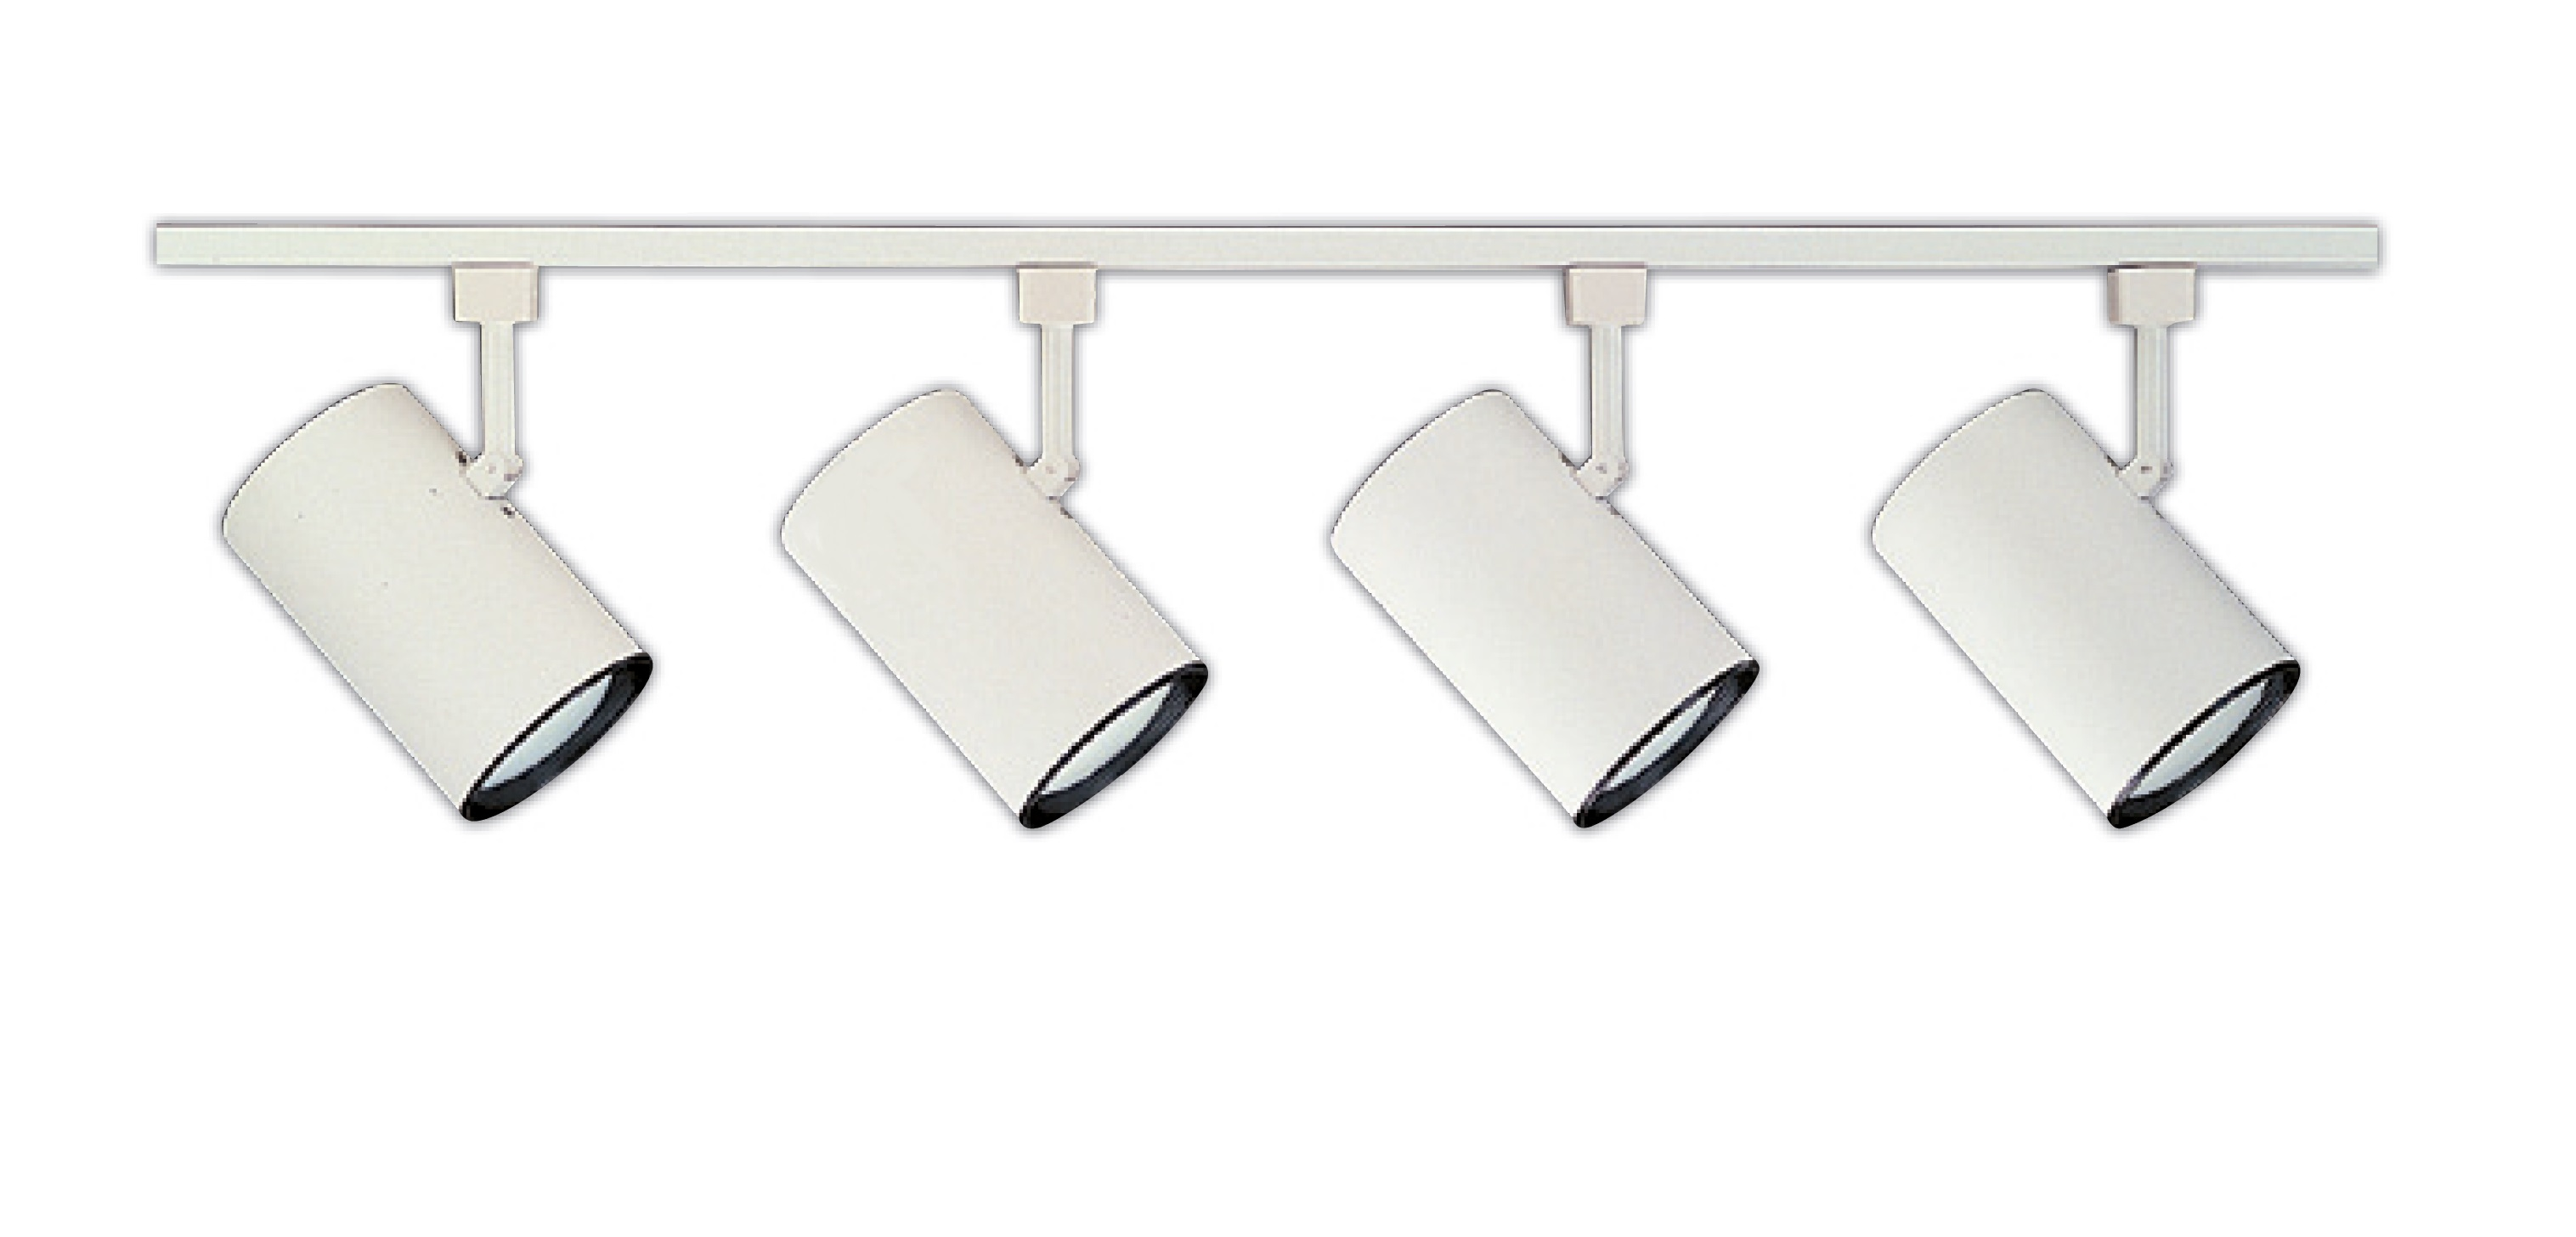 NICOR Lighting 4 Ft. 4-Light 75-Watt Linear Track Lighting Kit, White (10996WH4HEAD) by NICOR Lighting